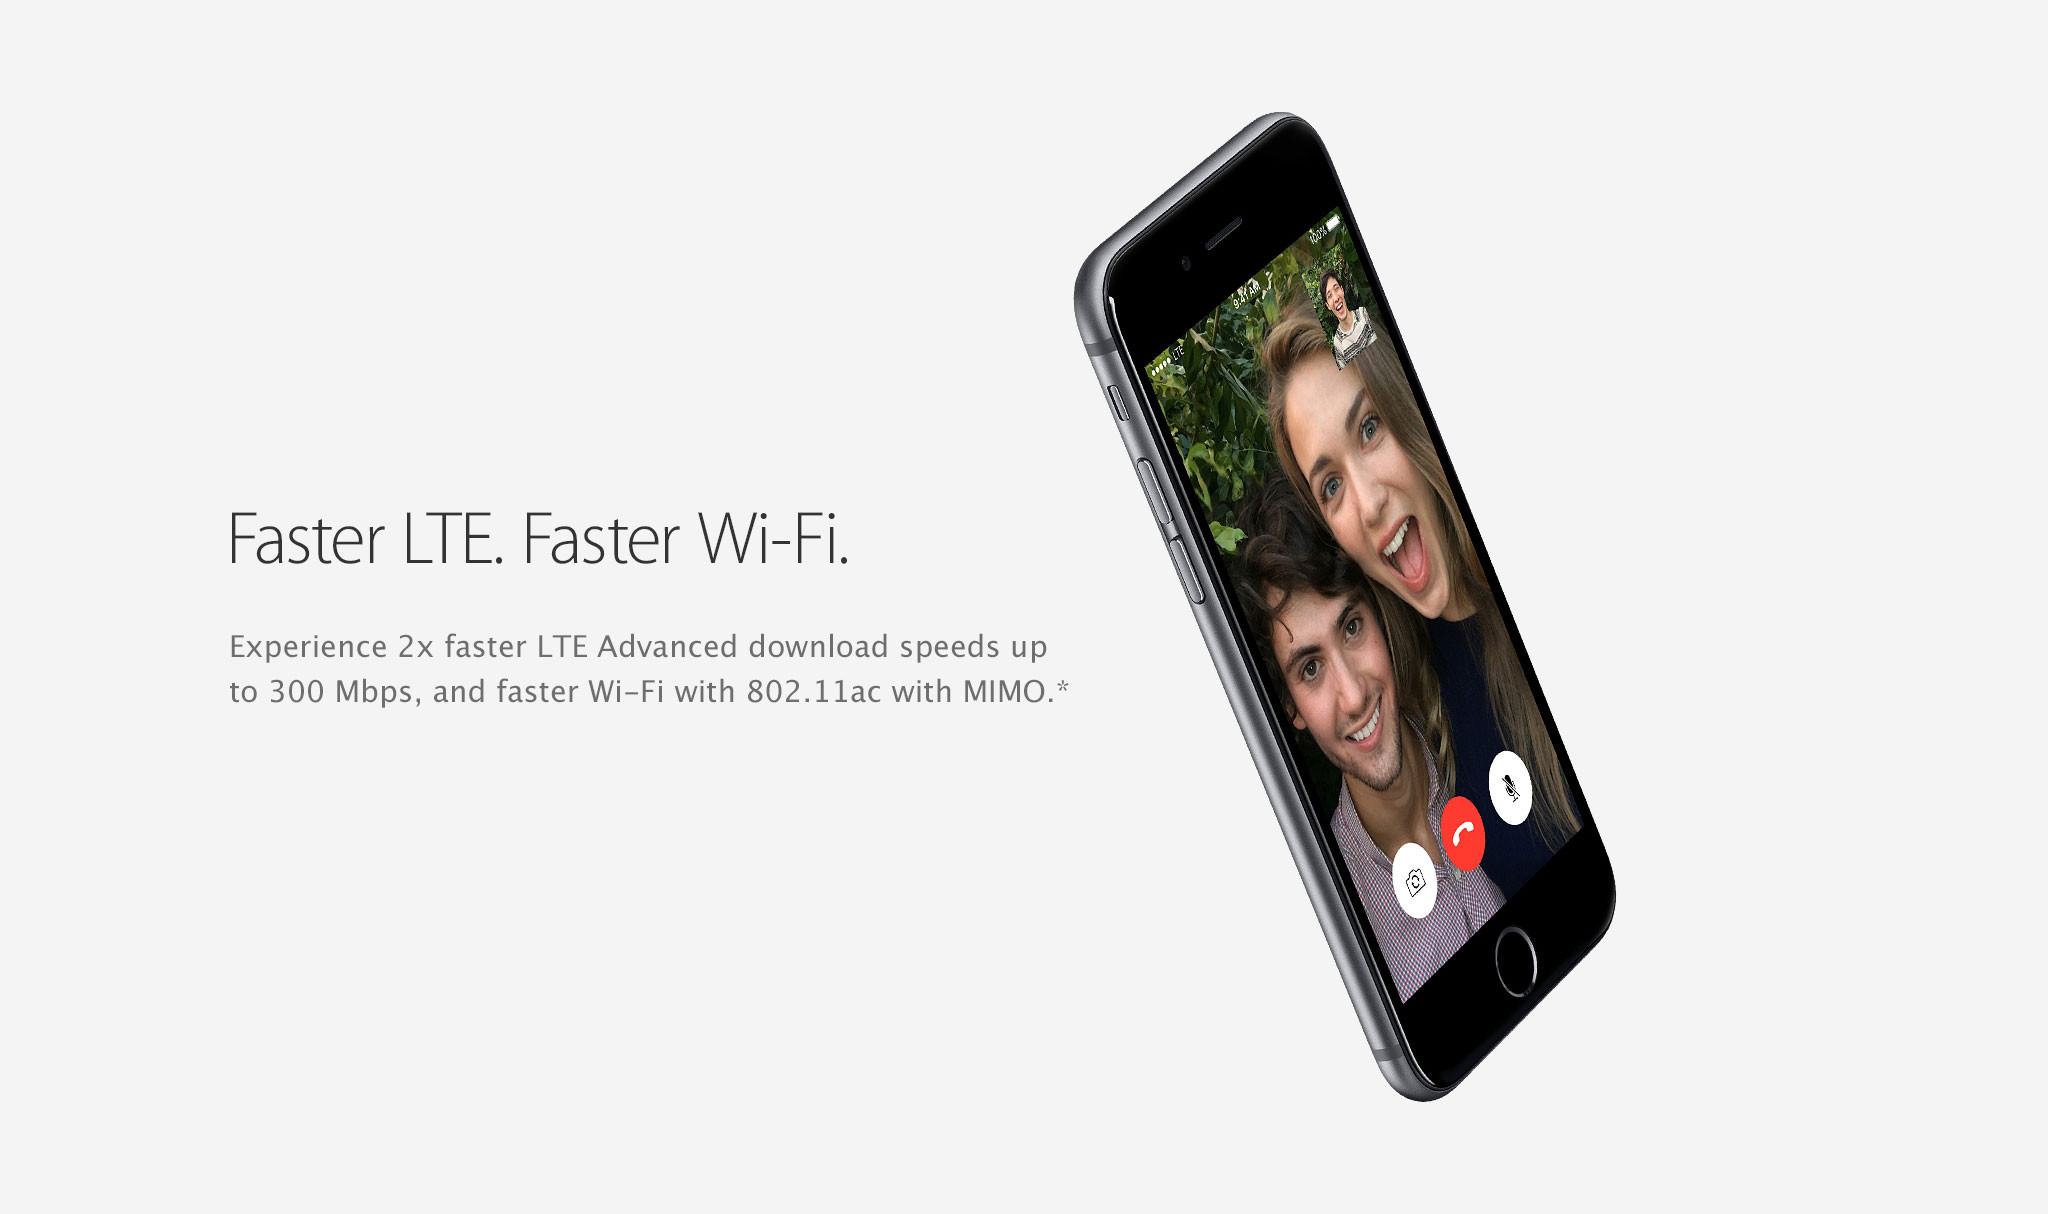 Faster LTE. Faster Wi-Fi. Experience 2x faster LTE Advanced download speeds up to 300 Mbps, and faster Wi-Fi with 802.11ac with MIMO.*